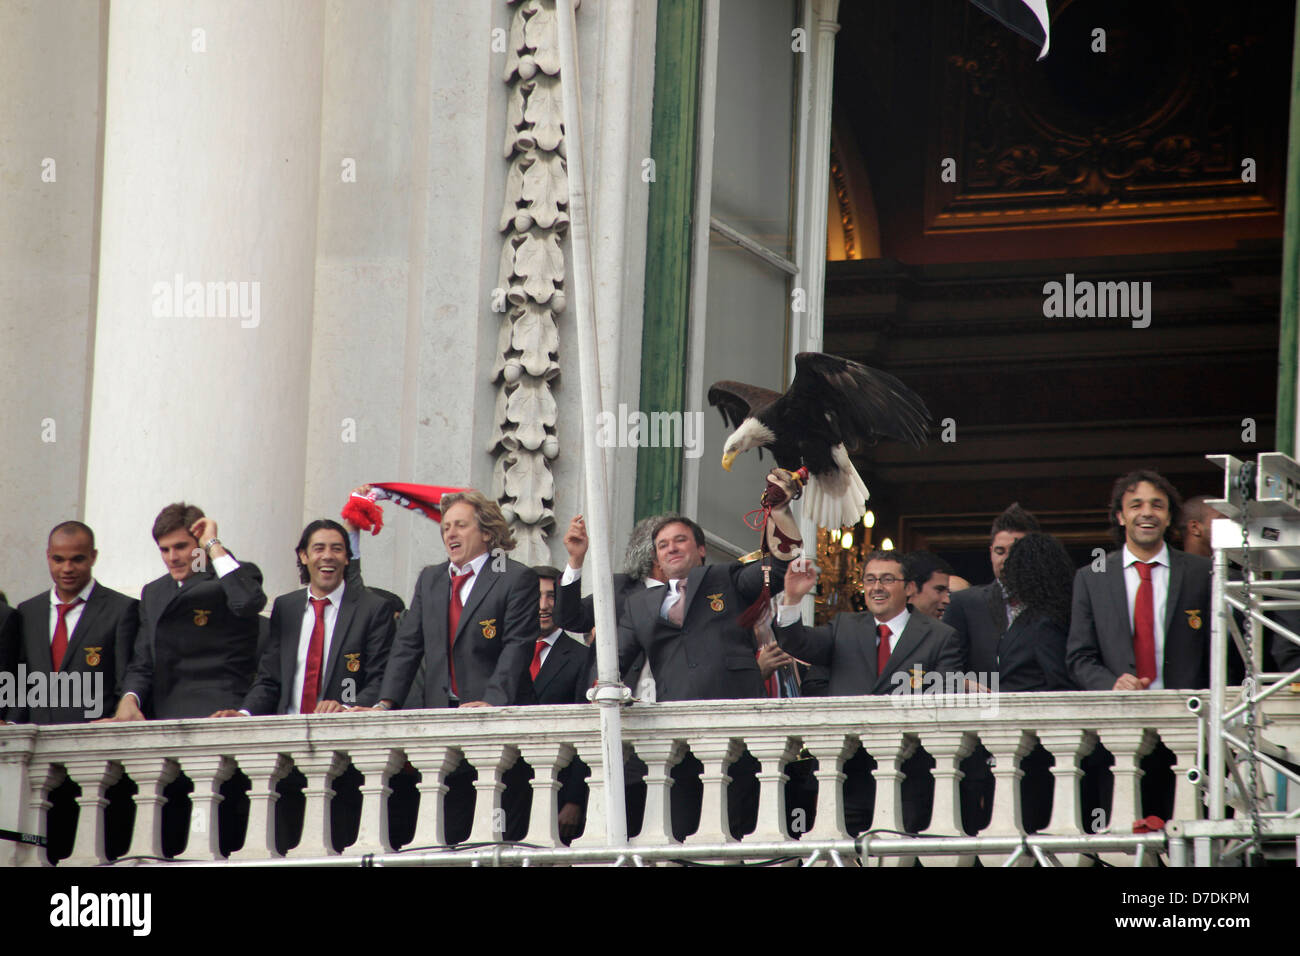 Team, eagle and officials of Benfica Lissabon celebrating the portuguese soccer championship 2010 on the balcony - Stock Image